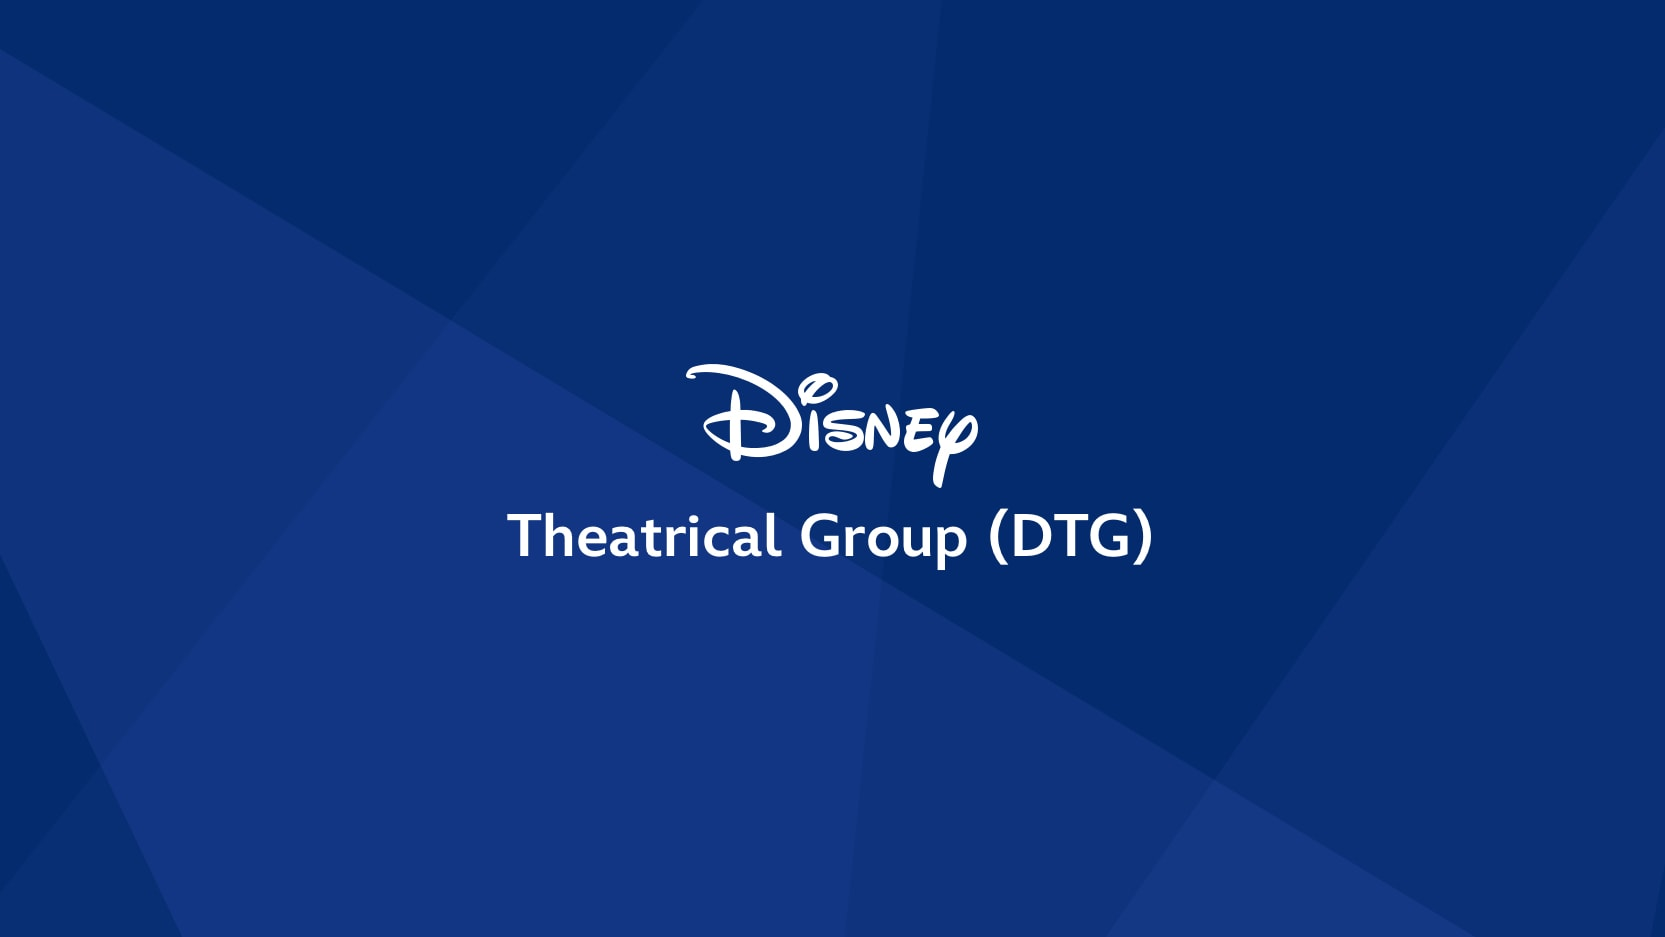 Frozen confirms new opening plans from August 2021